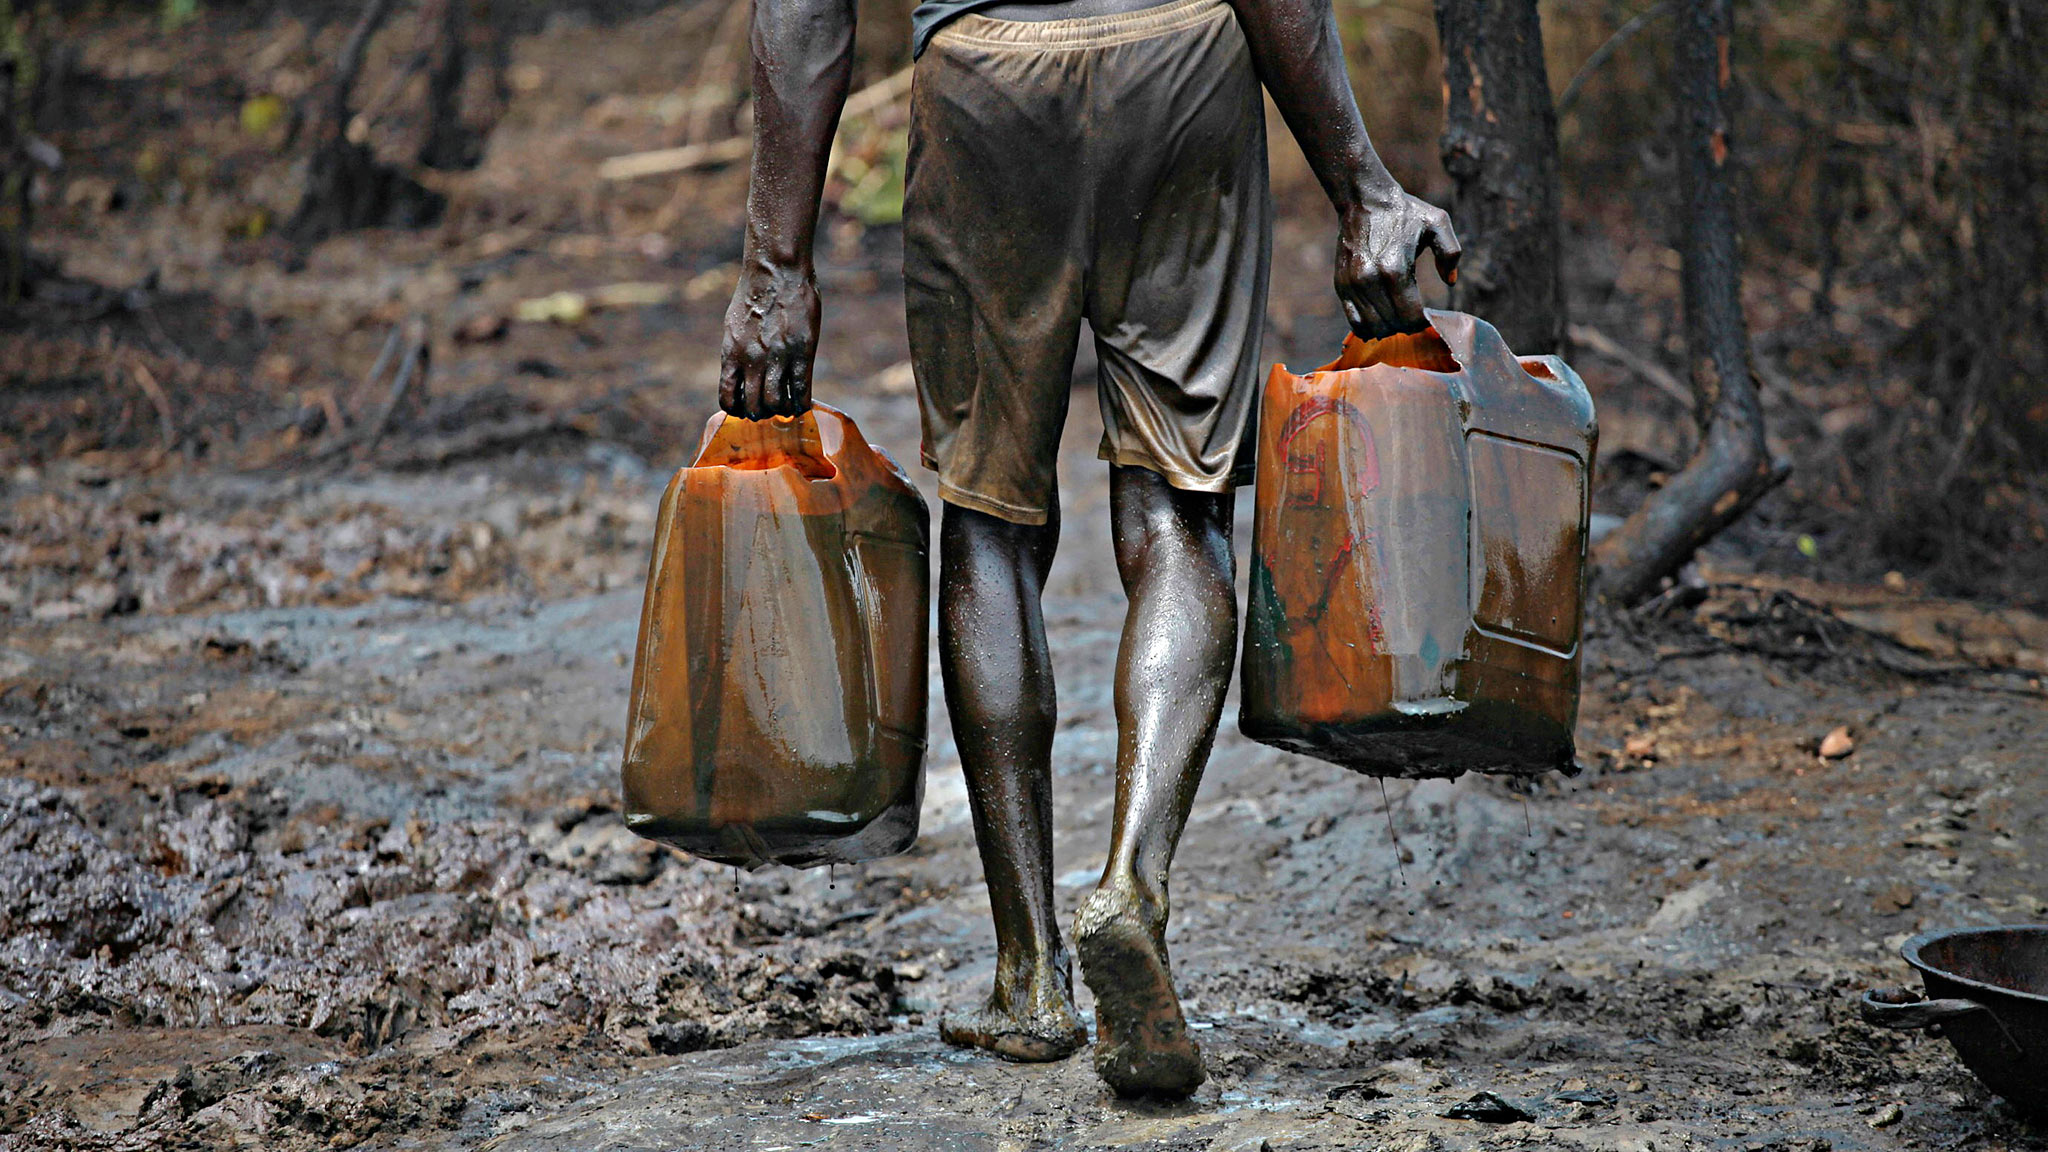 Oil Theft, illegal refinery